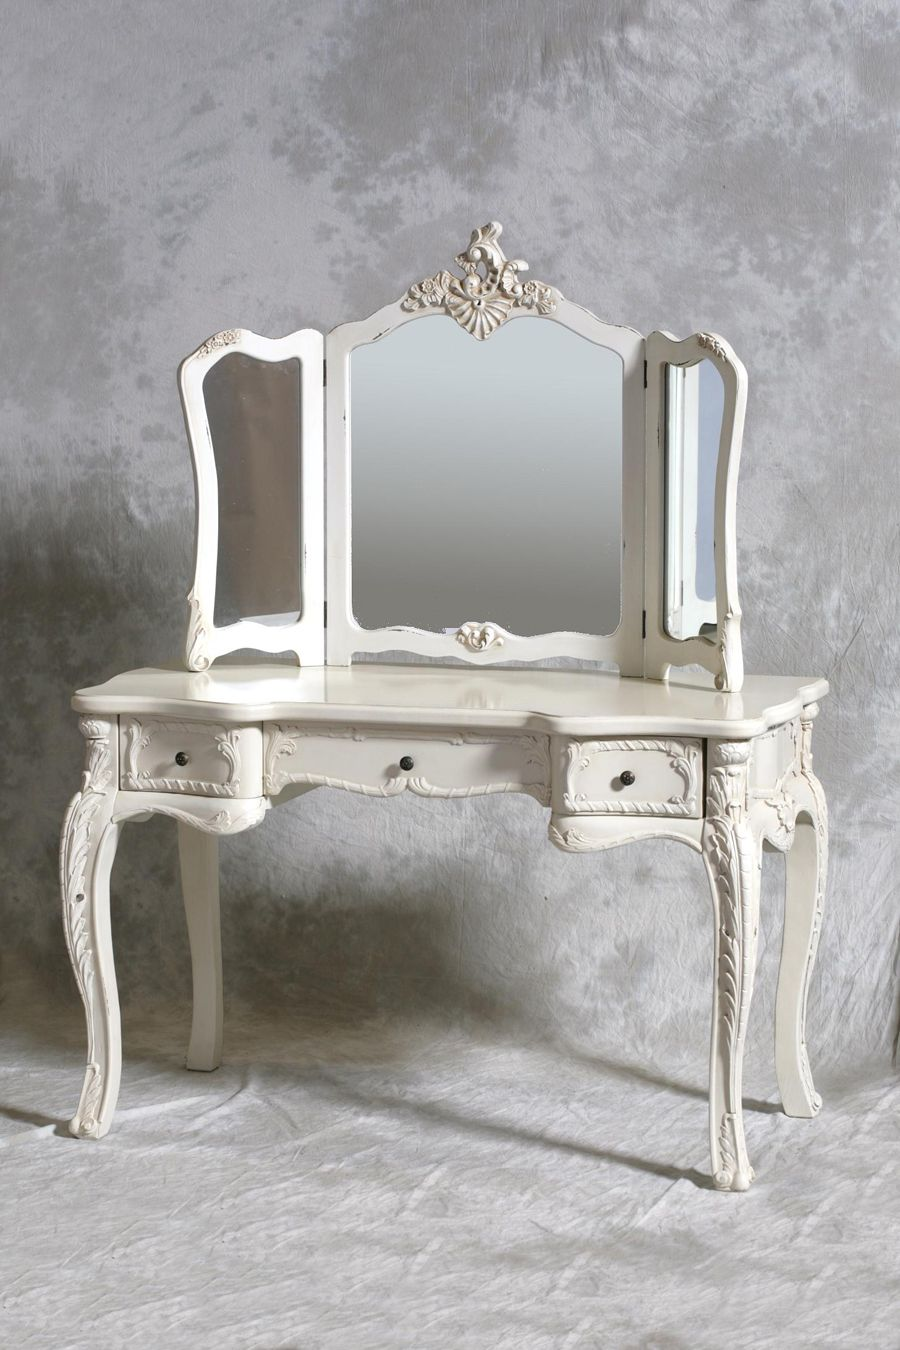 Wrought Iron Vanity Table Decoration Fine Looking Antique Dressing With Cool Three Furniture Interior Mirror White Wooden Frames And D